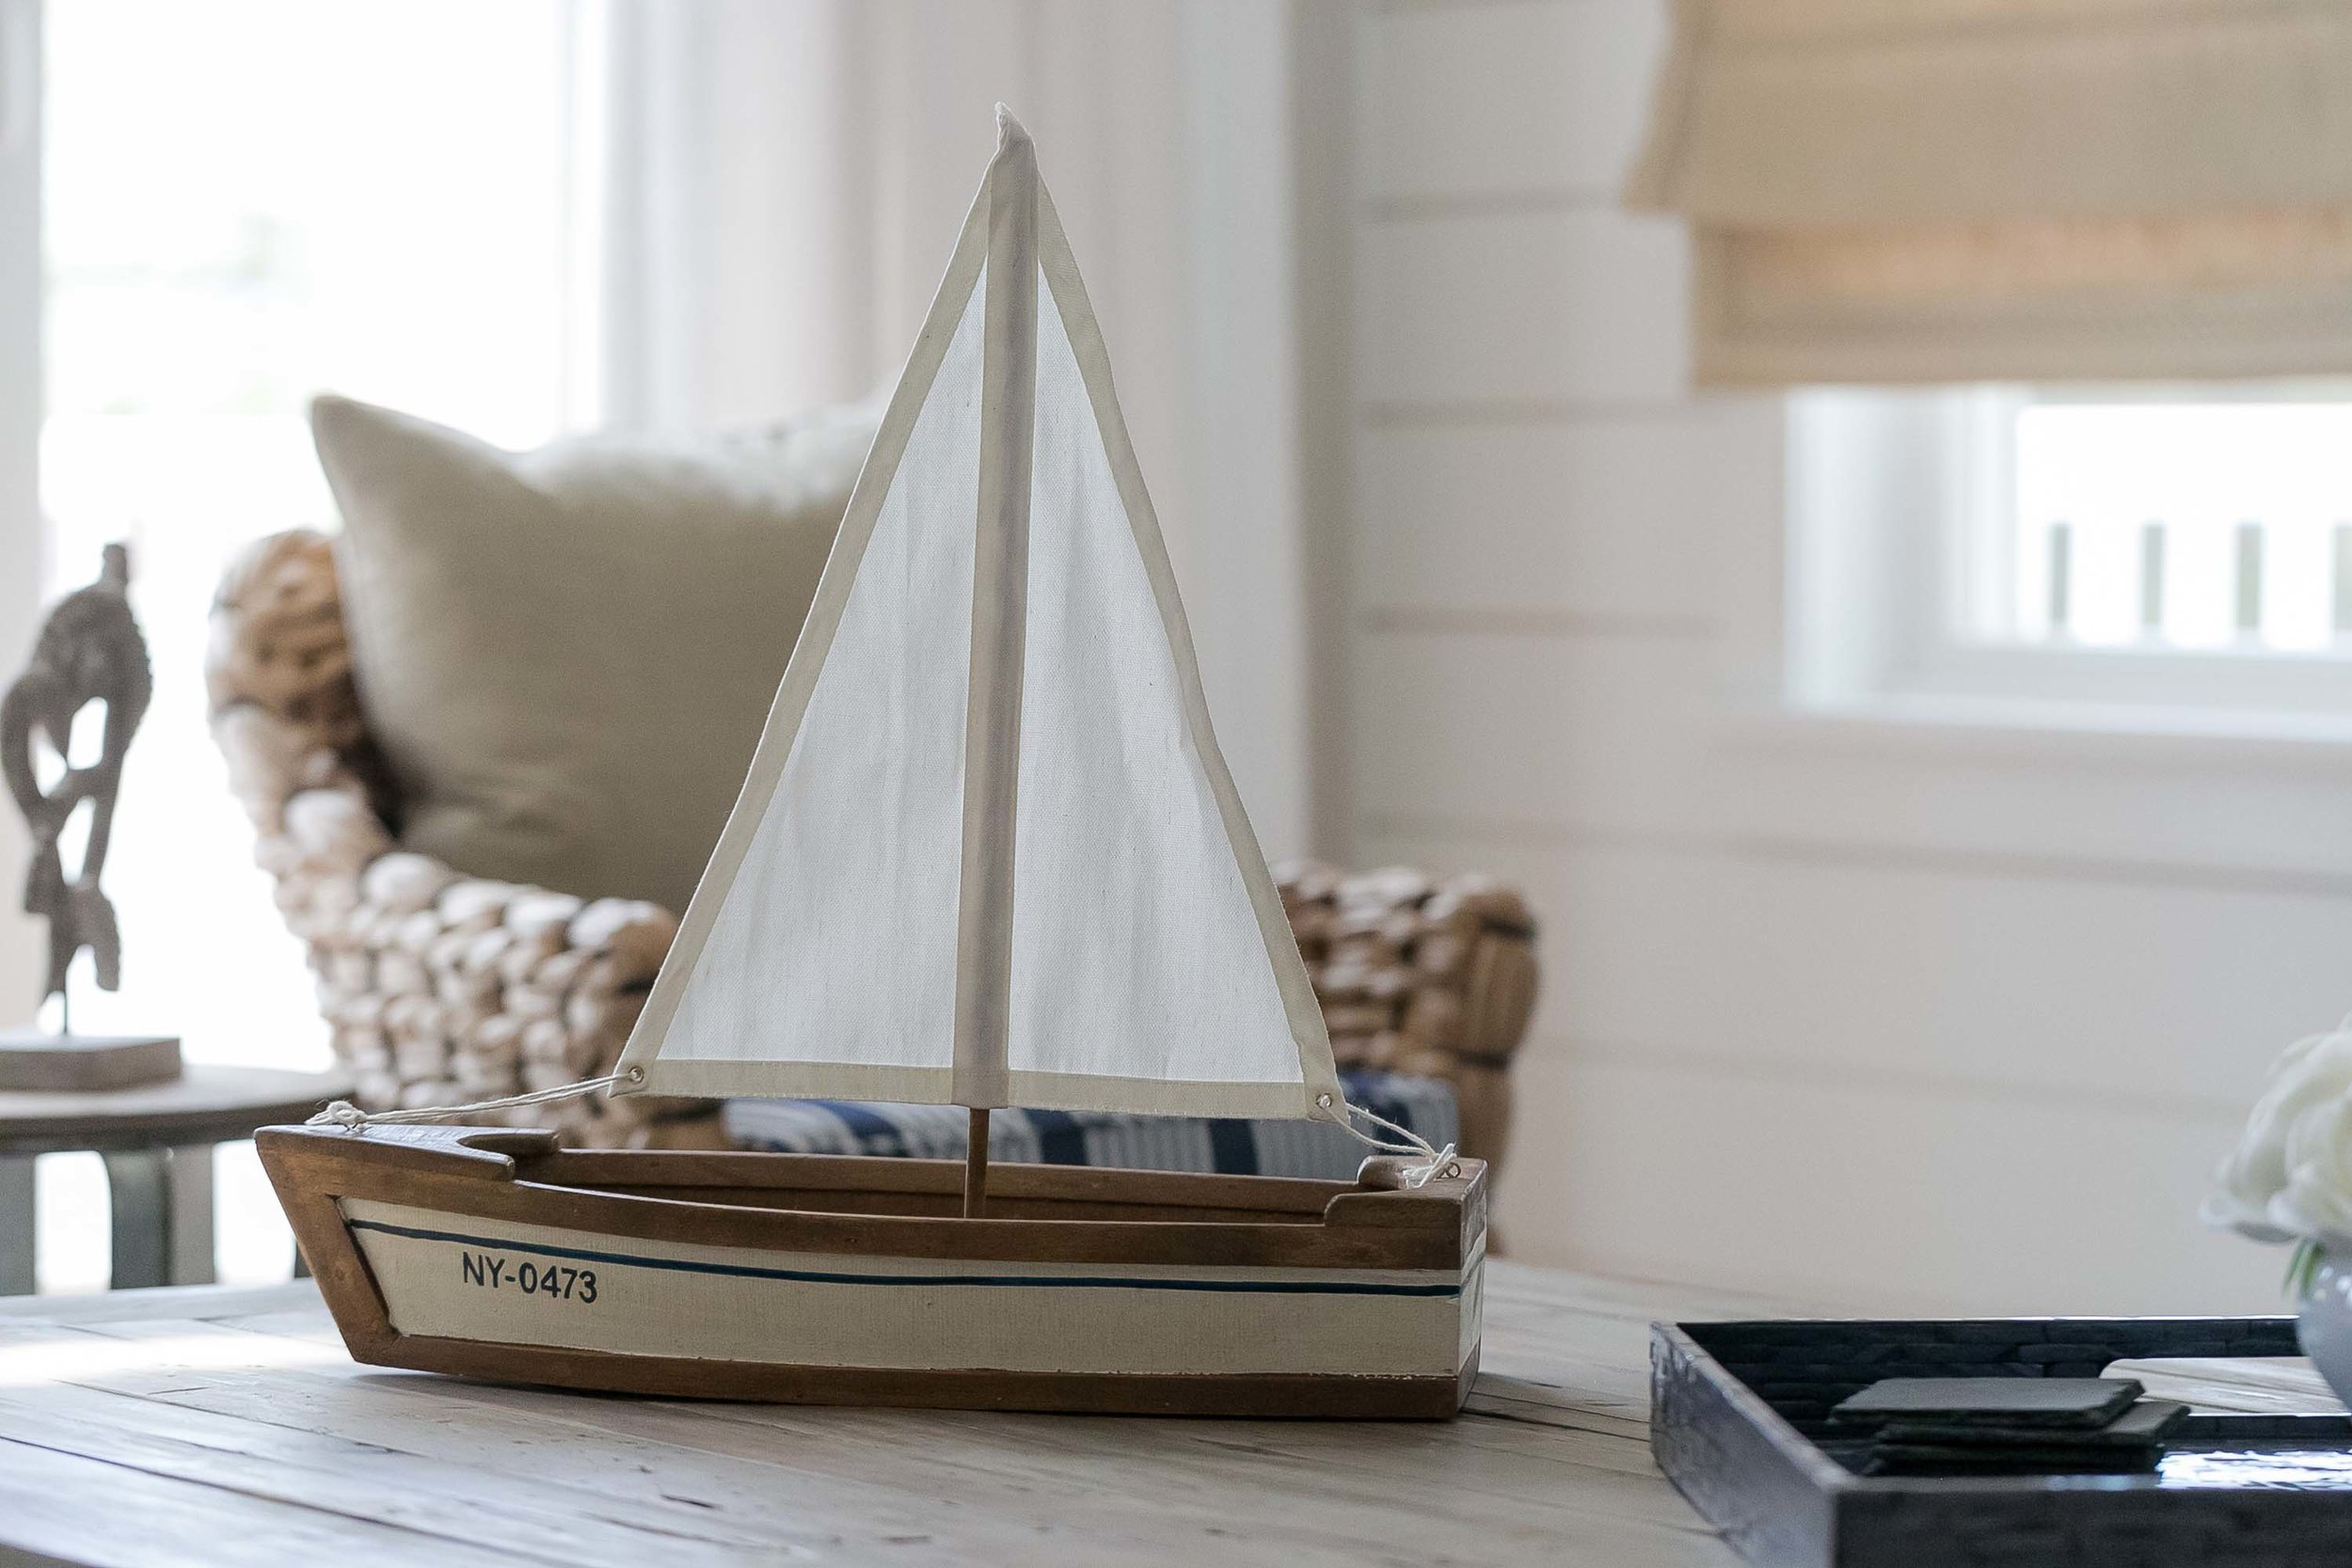 Wooden sailboat accessory